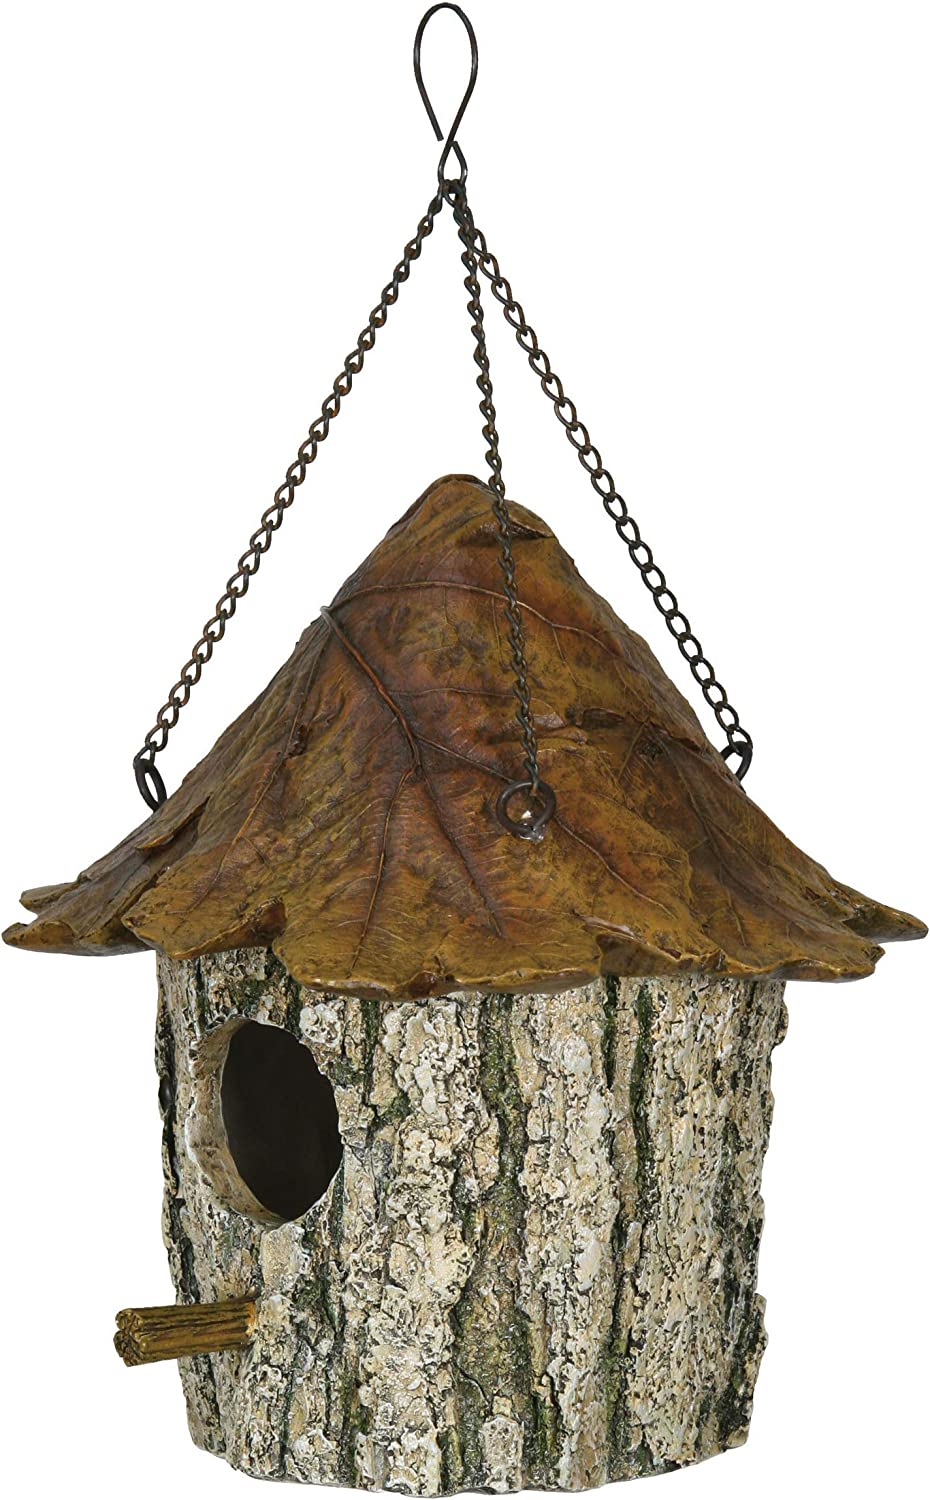 River's Edge Products Birdhouse - Oak Tree/Leaf